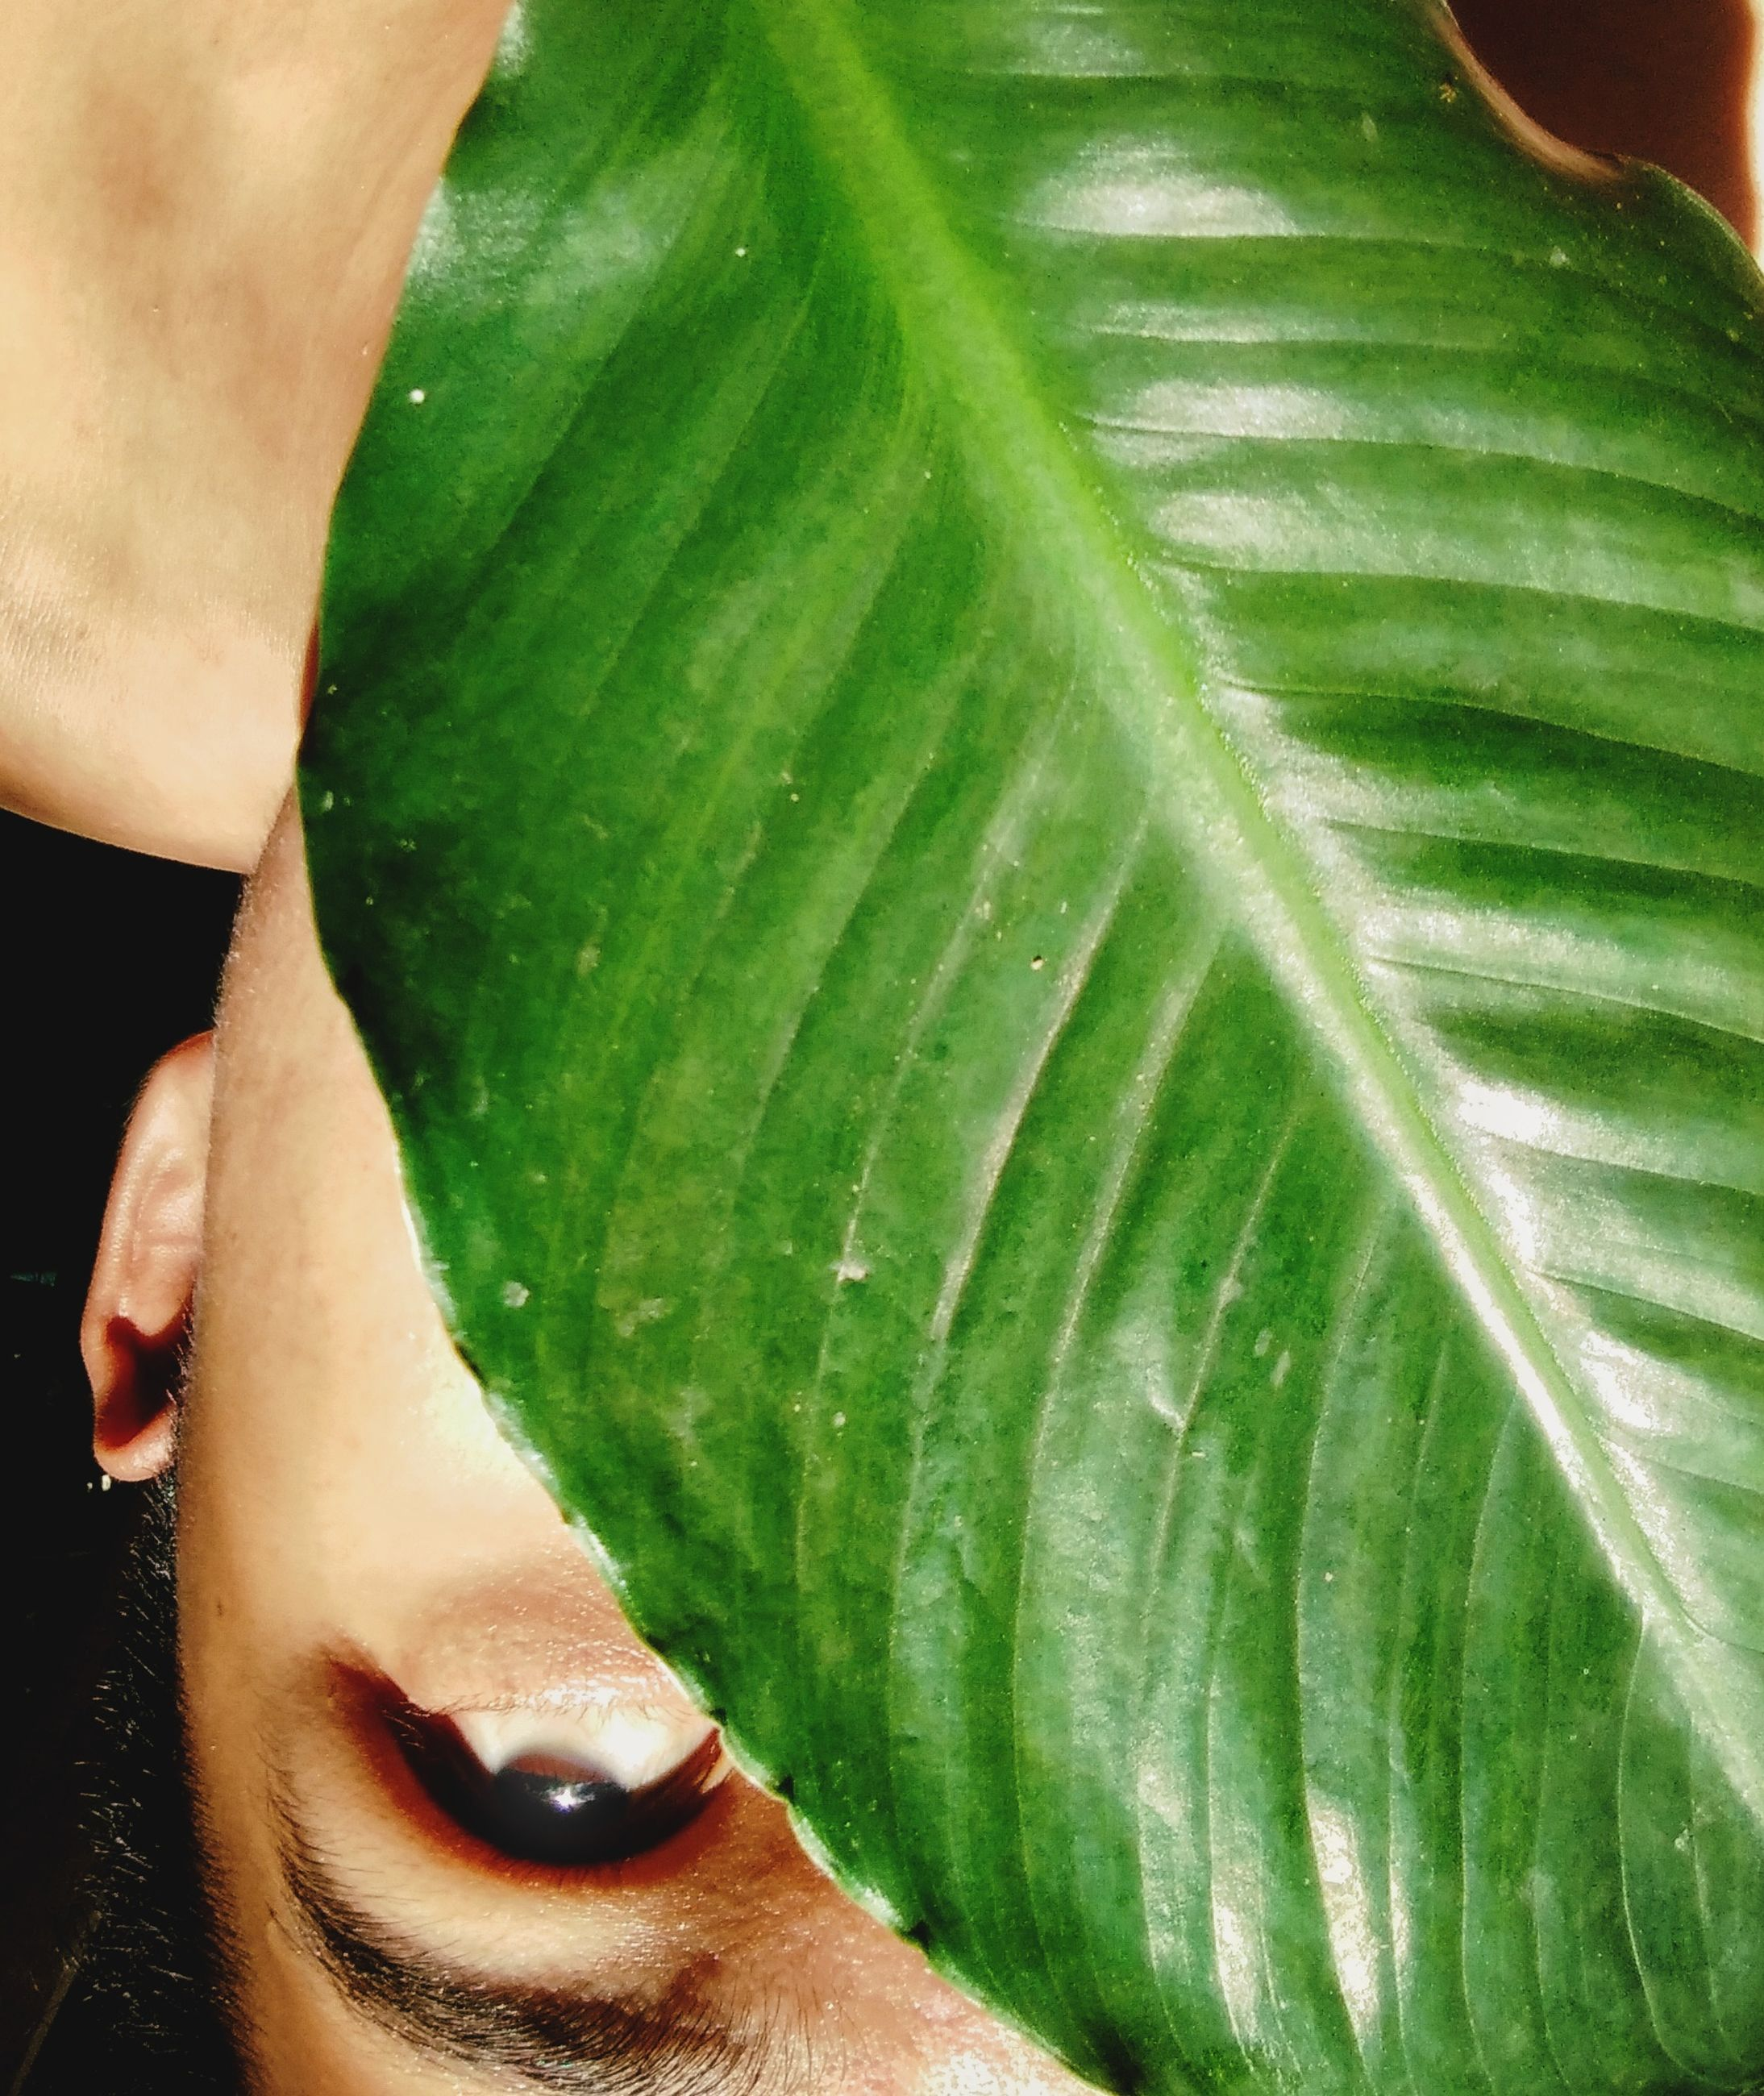 green color, human body part, close-up, one person, hand, leaf, food and drink, vegetable, human hand, body part, freshness, real people, food, plant part, nature, lifestyles, women, outdoors, day, finger, human face